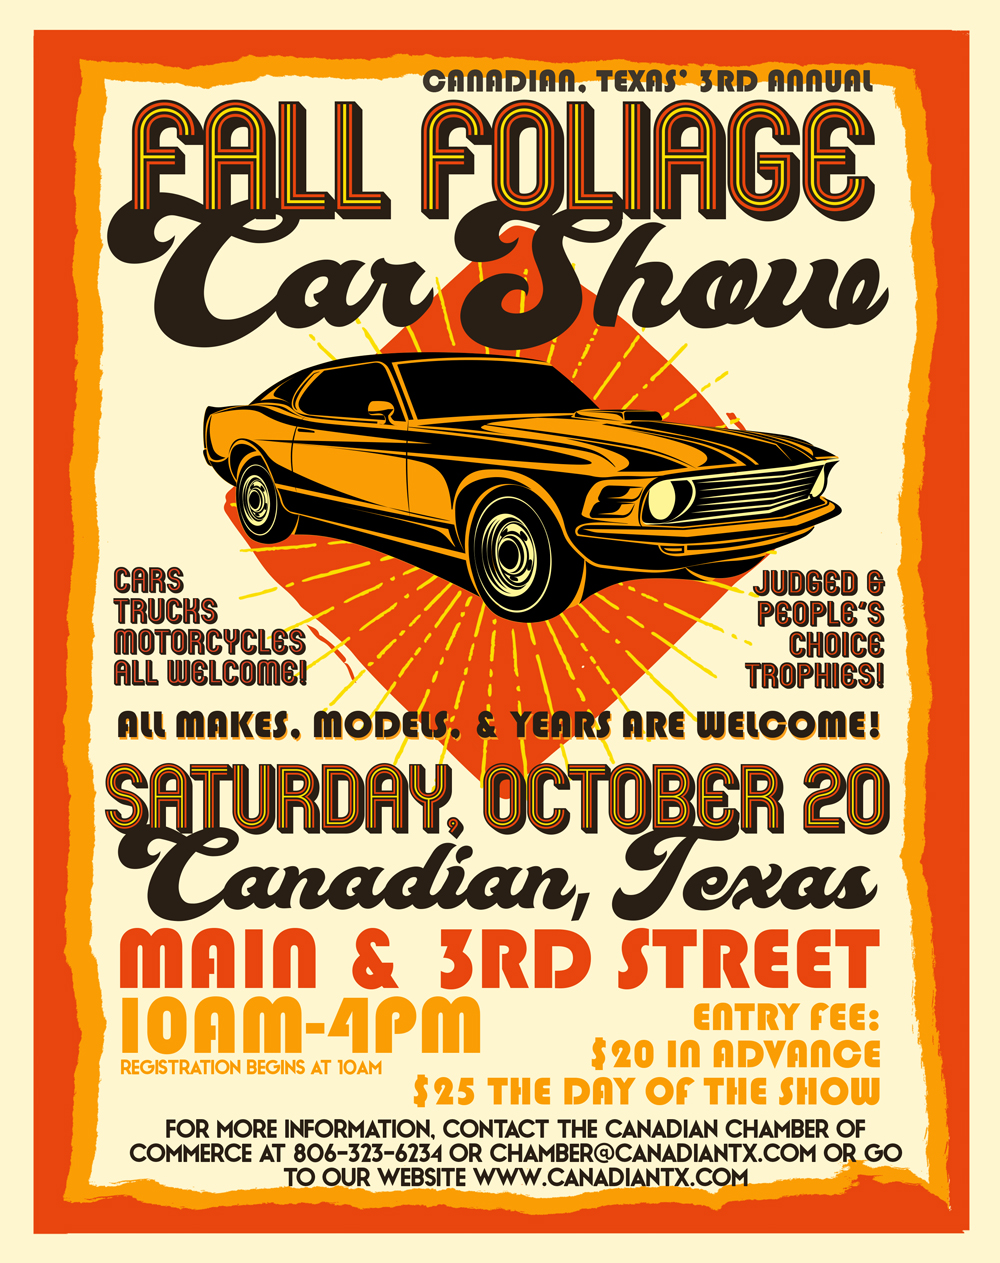 2018 fall foliage car show